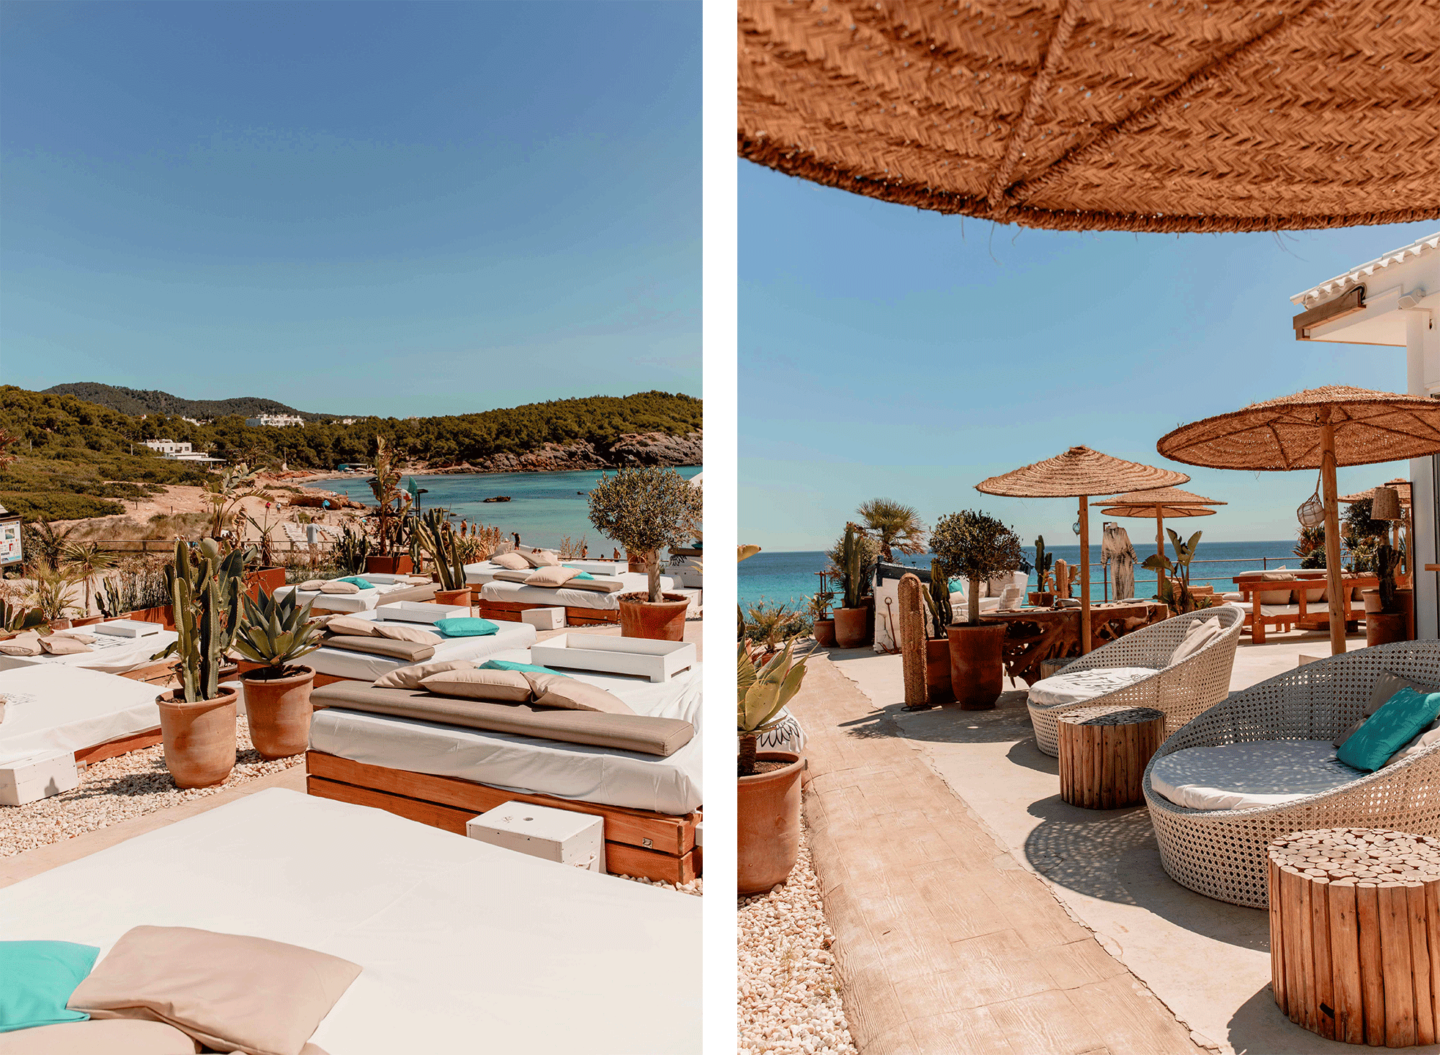 Top-things-to-do-in-Ibiza-Bucket-list--Instagram-Story-Template--kelseyinlondon-Kelsey-Heinrichs--What-to-do-in-Ibiza--Where-to-go-in-Ibiza-top-places-in-Ibiza-cala-nova---atzaro